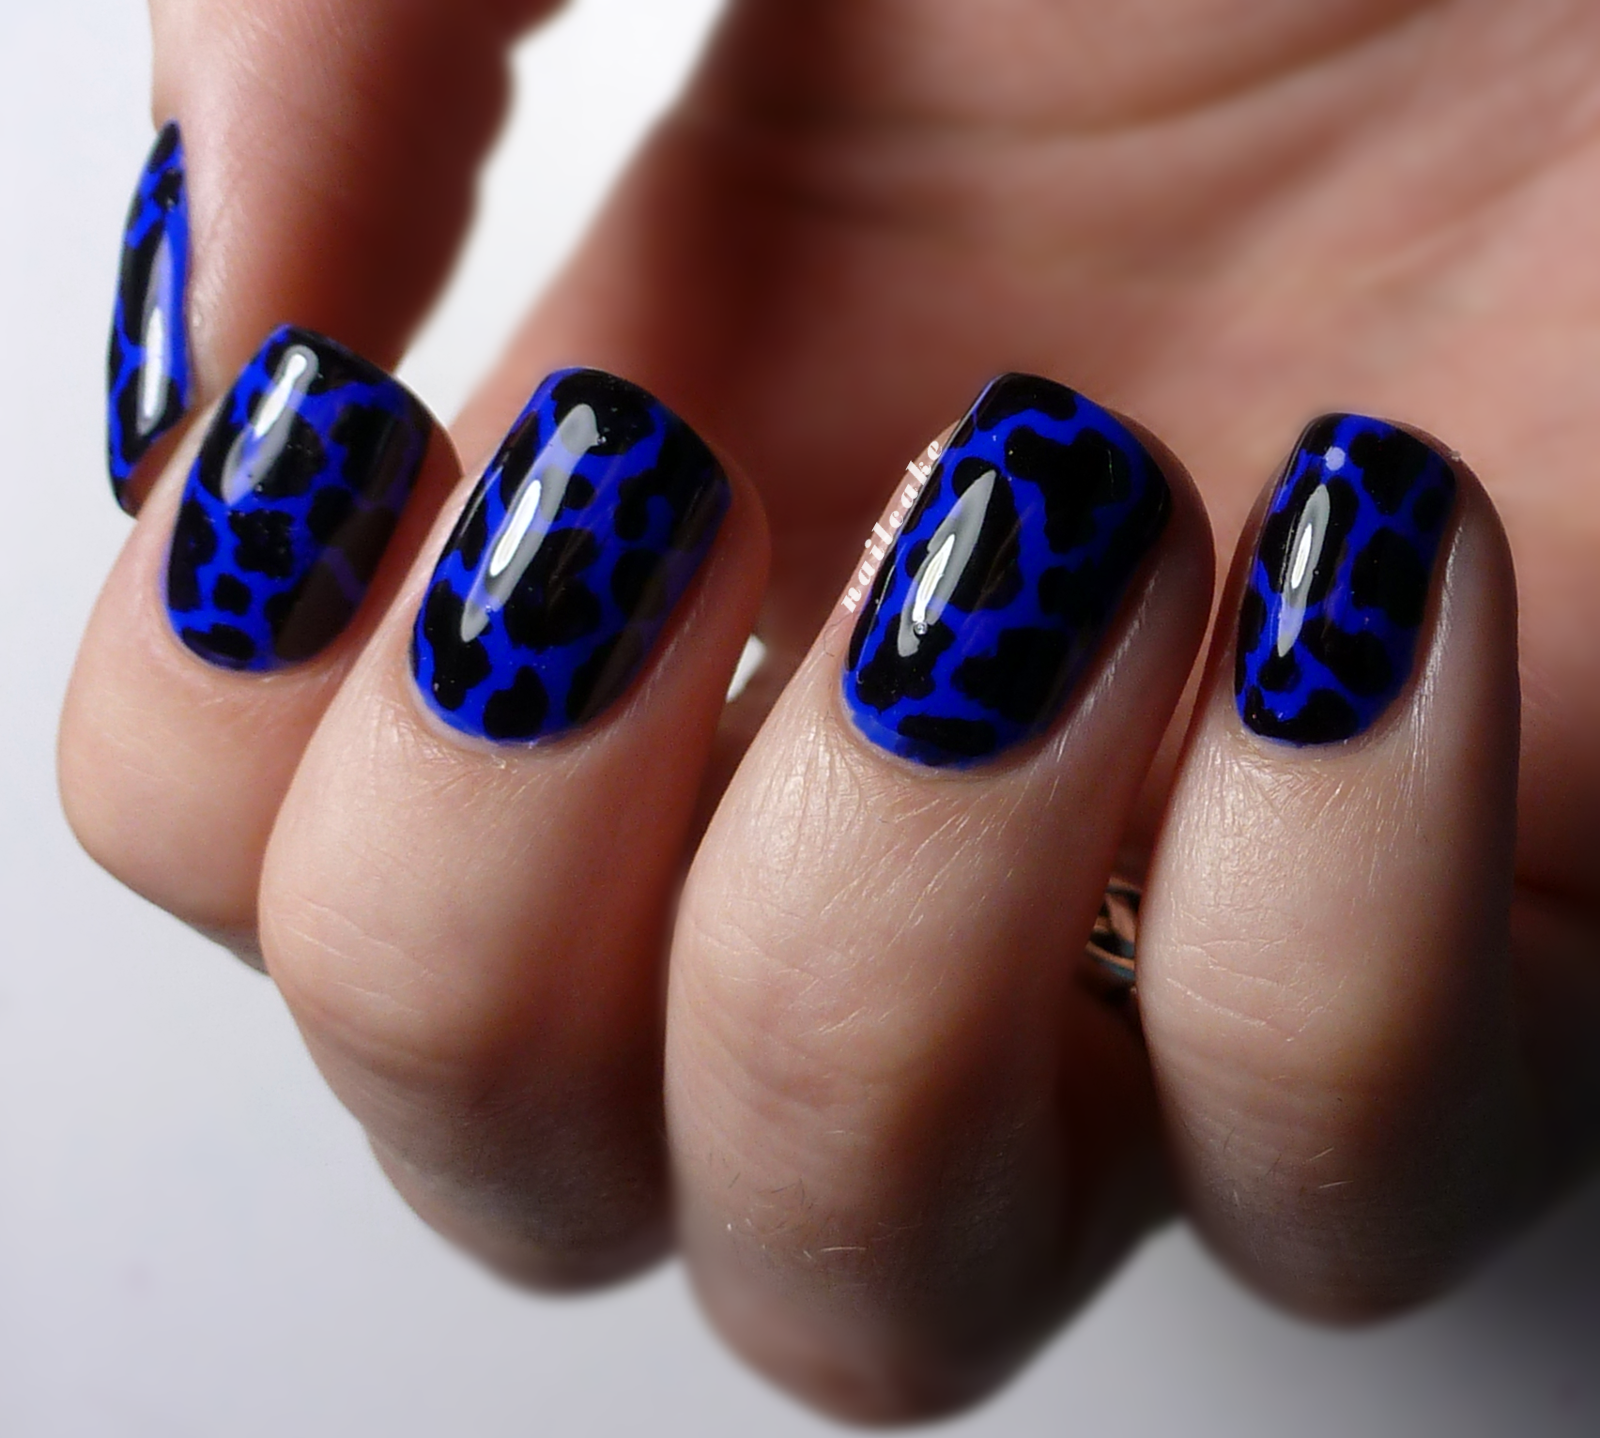 Nail Cake Blue Black Splodges Cow Print Nail Art